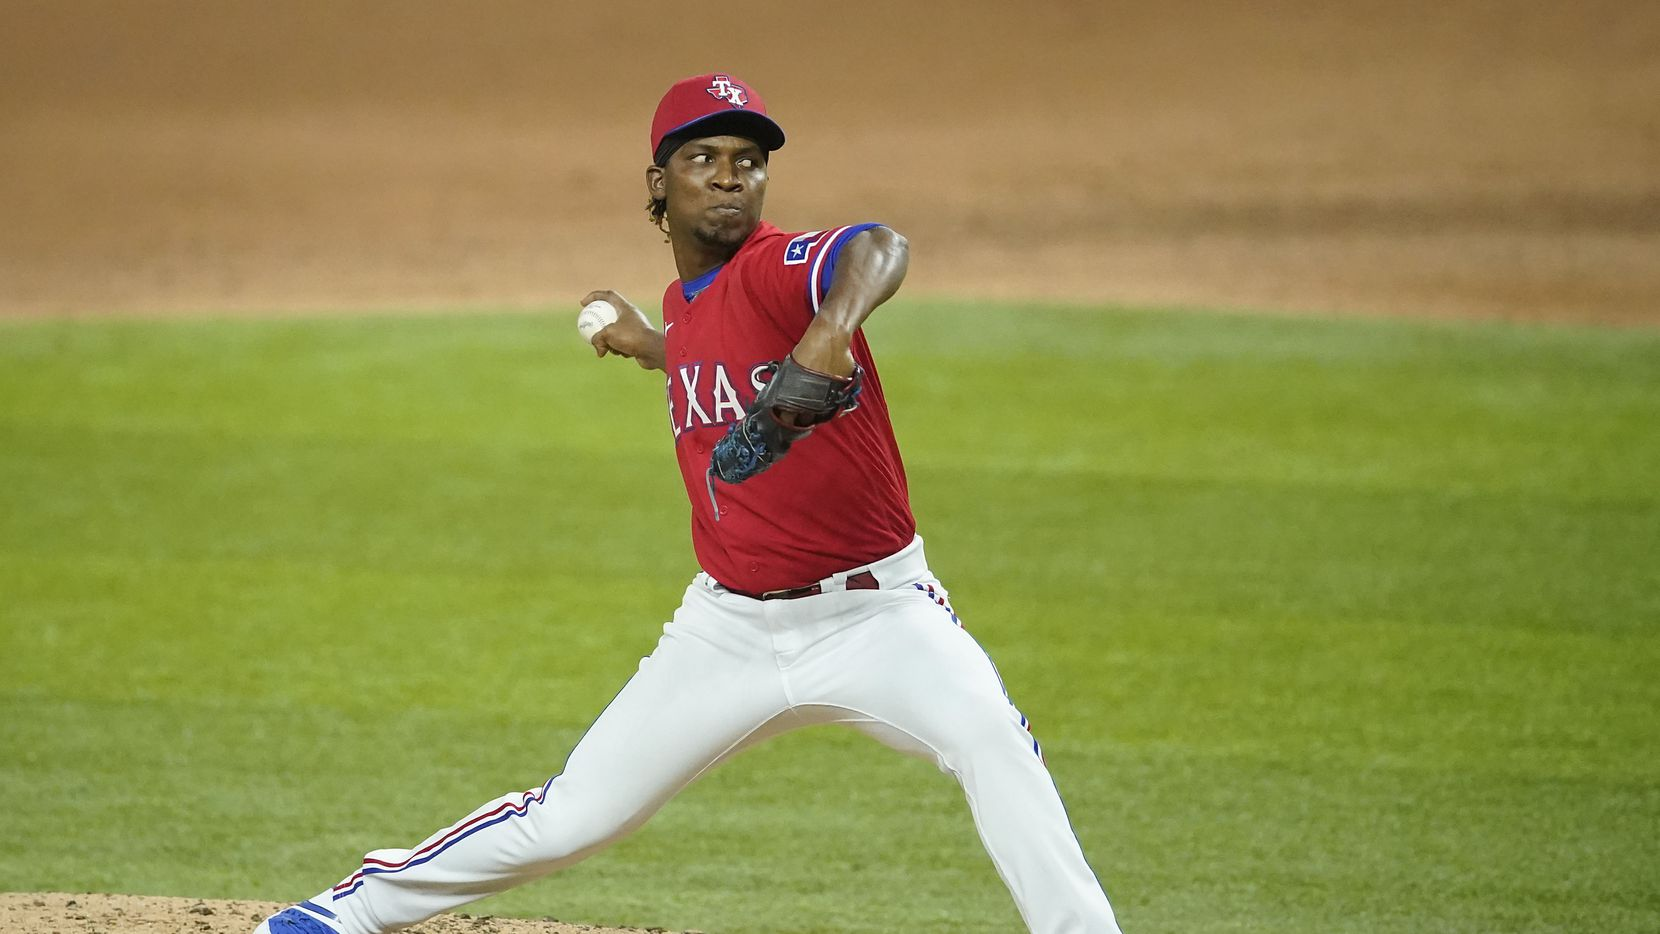 Texas Rangers pitcher Rafael Montero delivers during the ninth inning against the Los Angeles Angels at Globe Life Field on Friday, Aug. 7, 2020.